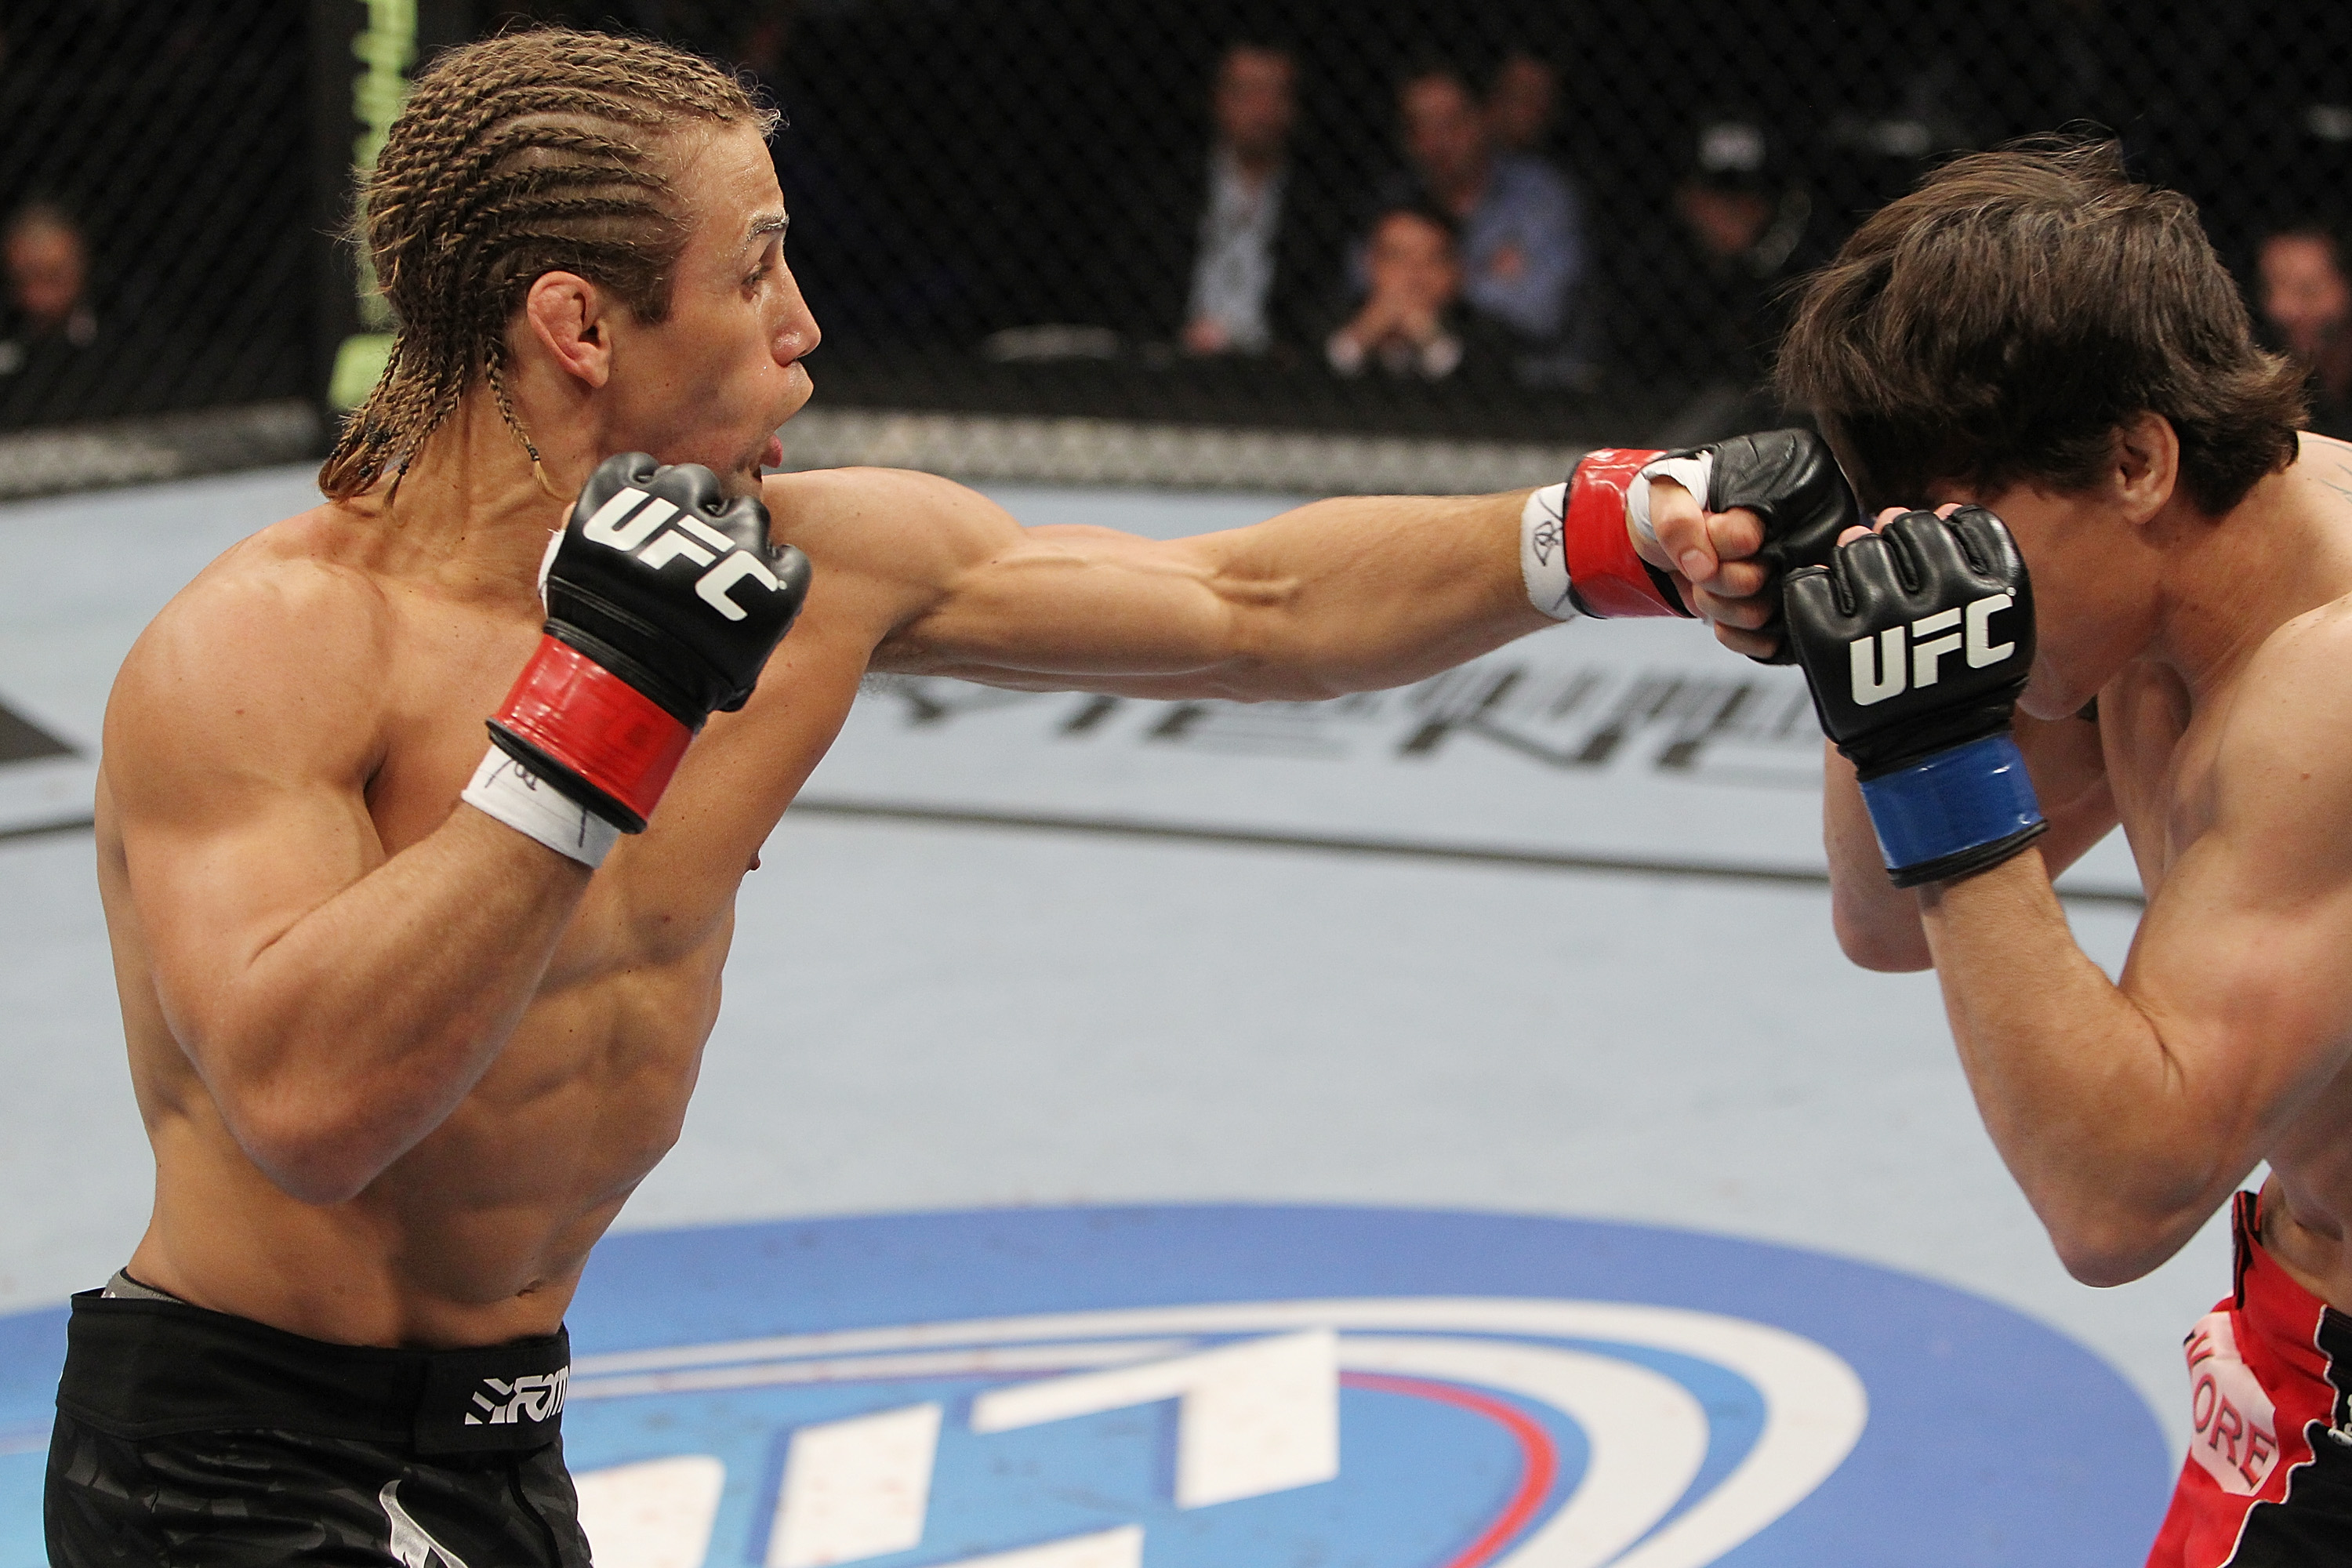 SAN JOSE, CA - NOVEMBER 19: (L-R) Urijah Faber punches Brian Bowles during an UFC Bantamweight bout at the HP Pavillion in San Jose, California on November 19, 2011 in San Jose, California.  (Photo by Josh Hedges/Zuffa LLC/Zuffa LLC via Getty Images)